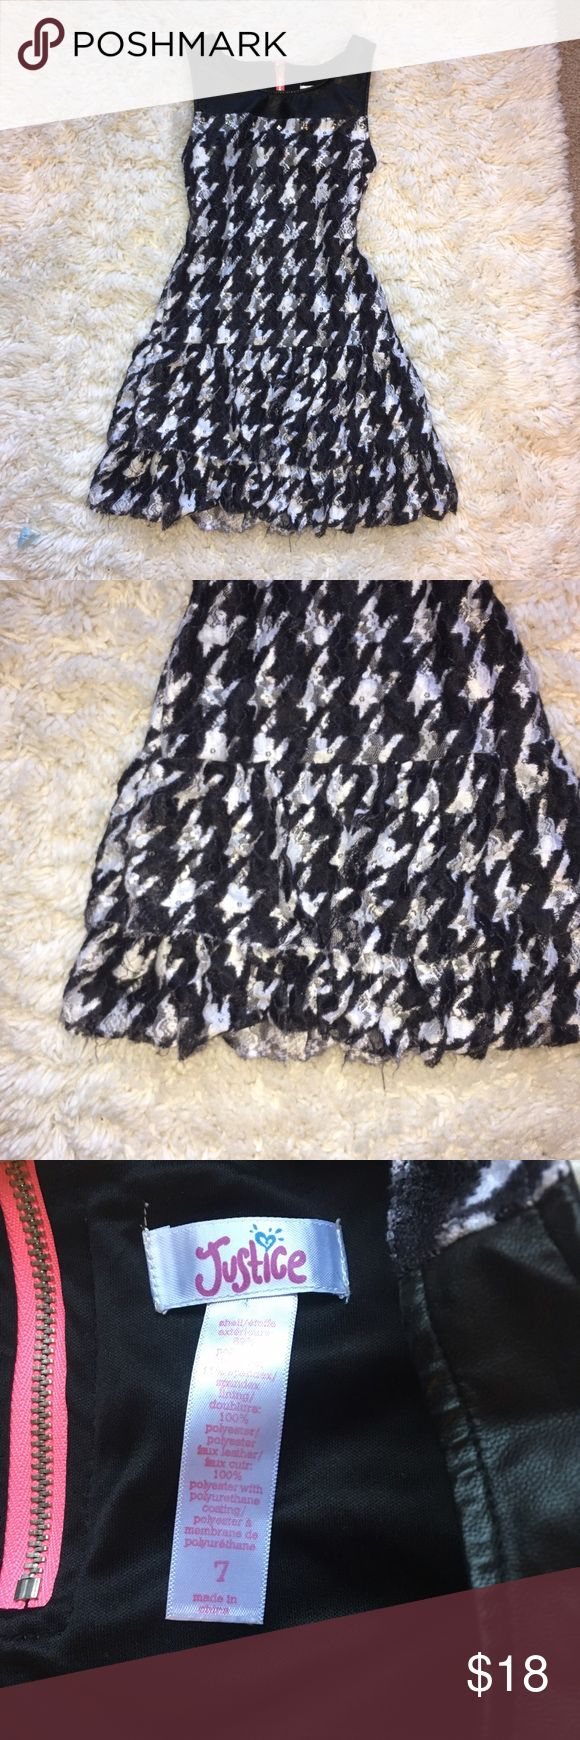 Girls 7 Justice Black White Pink Ruffle Dress Little Girls Size 7 Justice Black White Hot Pink Ruffle Rocker Chic Dress. Great condition. 💐Bundle and get 20% off! Justice Dresses Casual